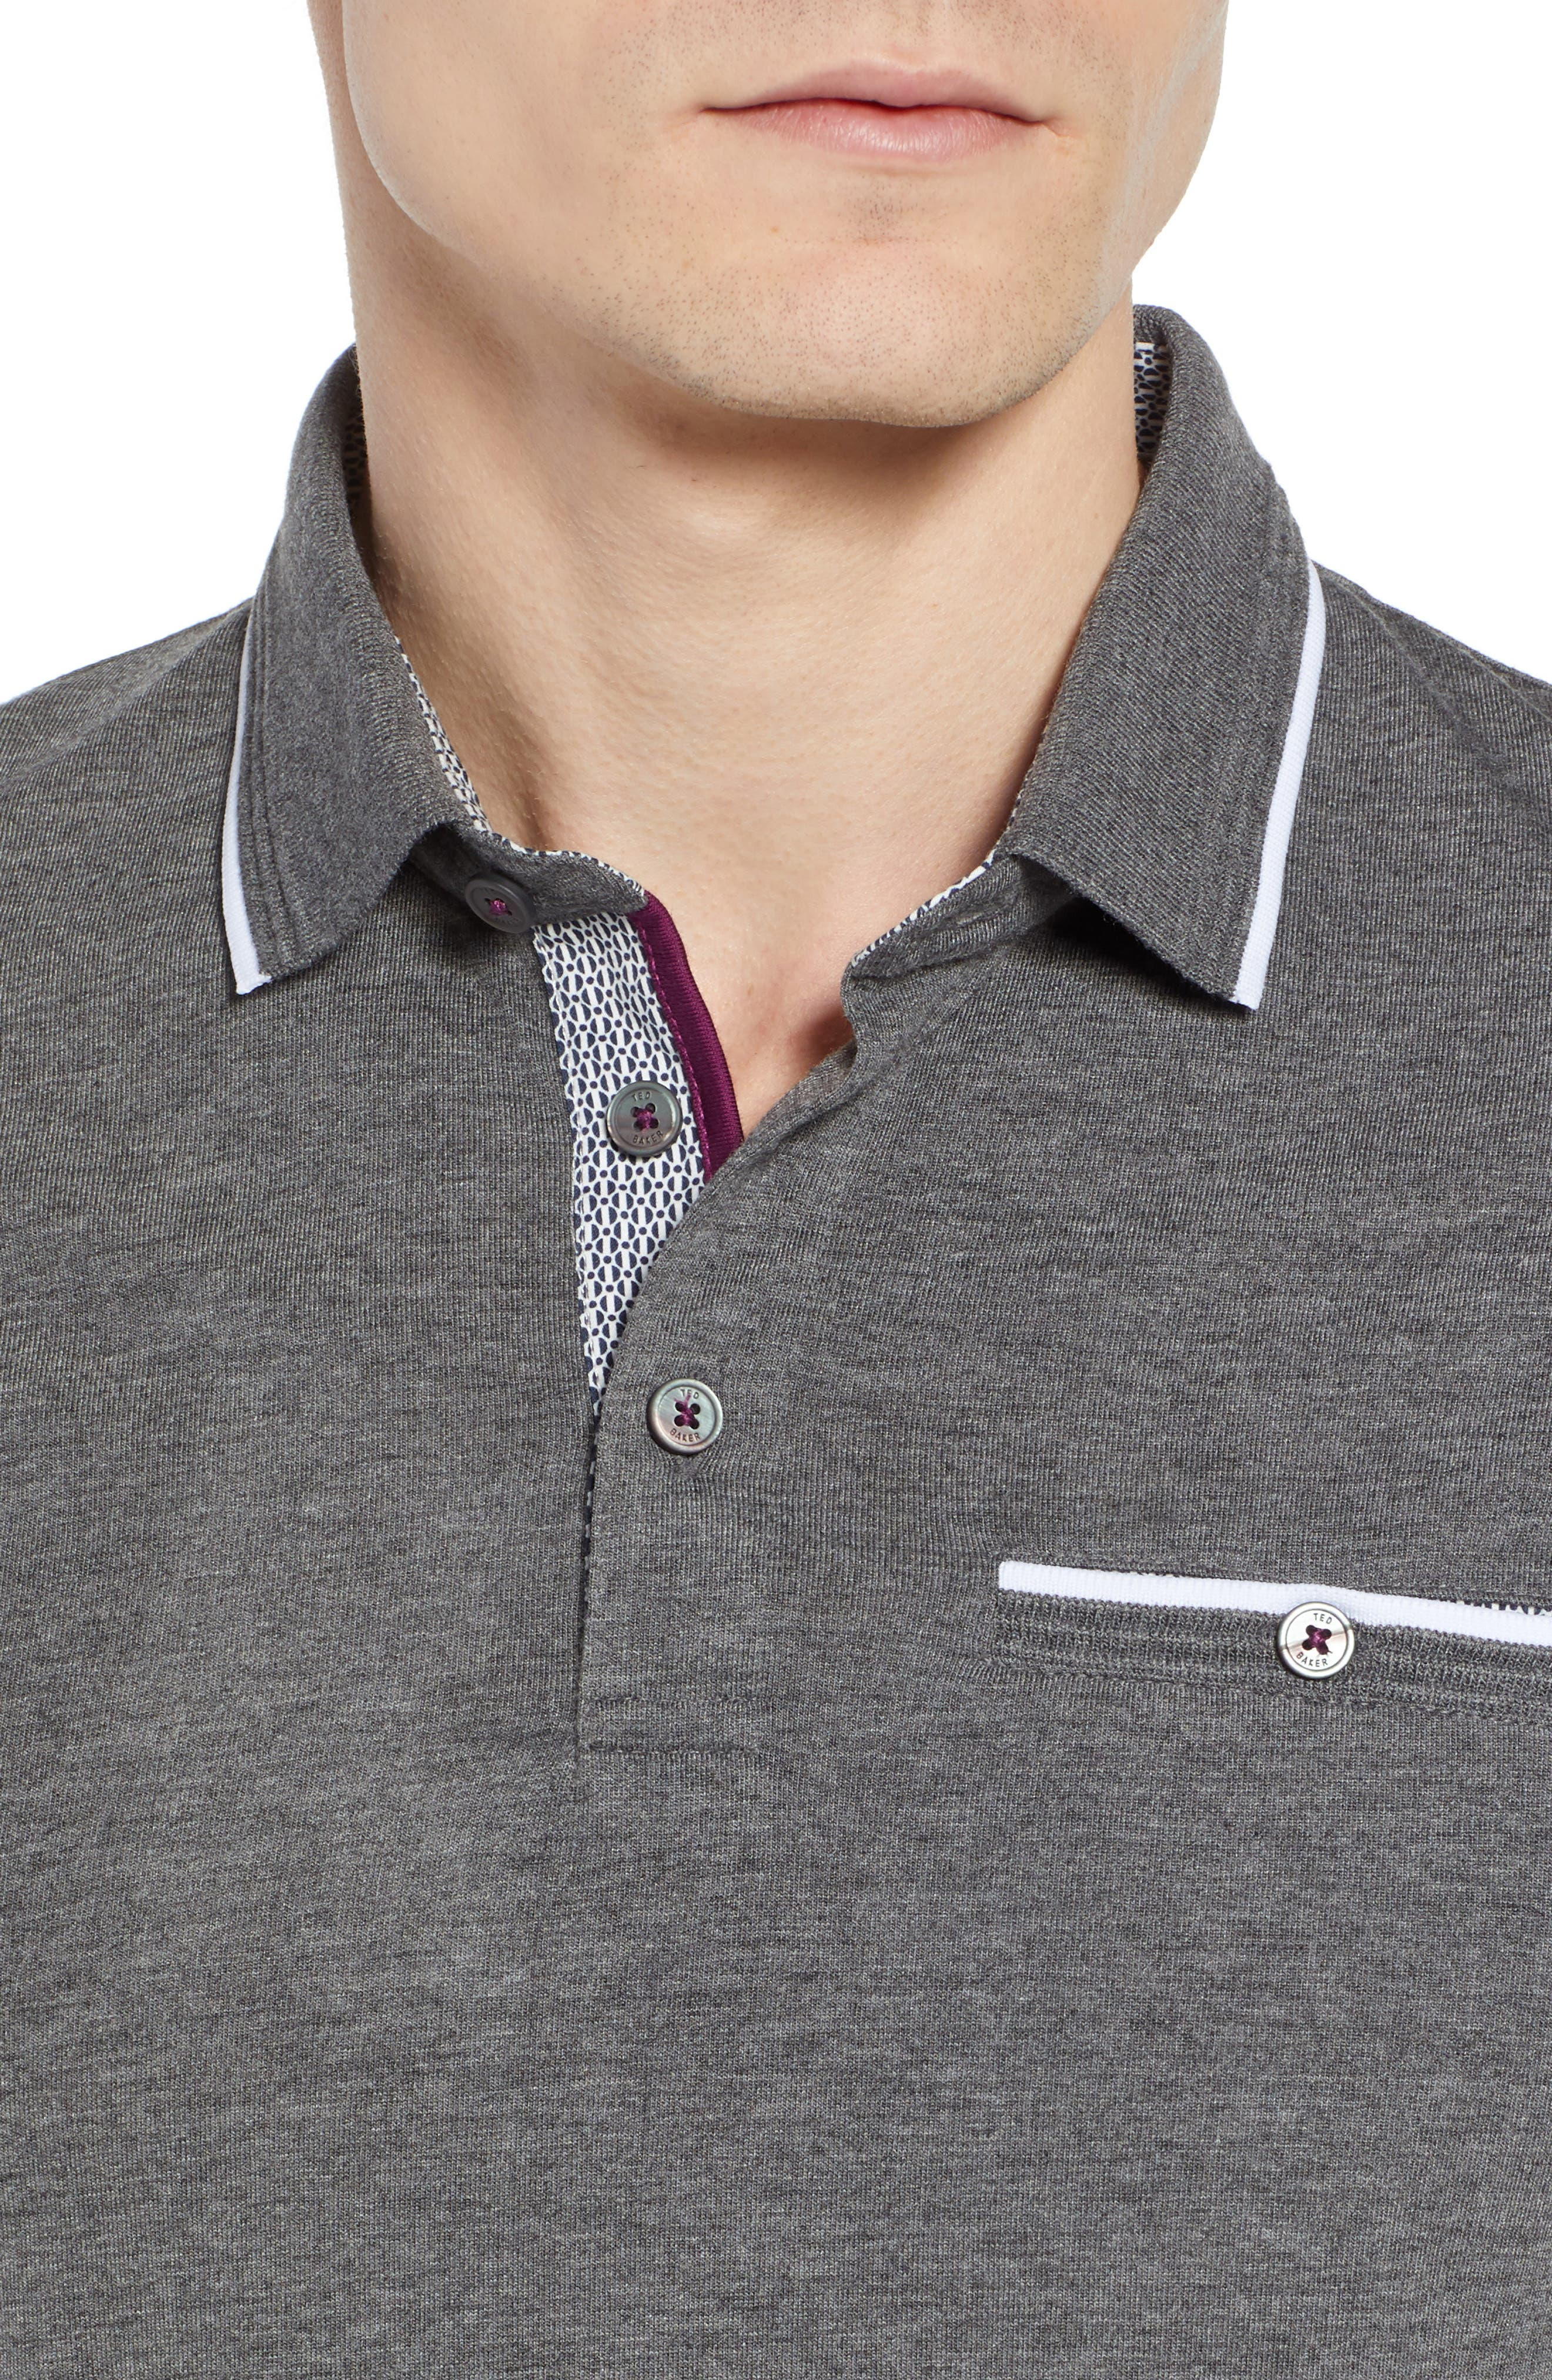 Derry Modern Slim Fit Polo,                             Alternate thumbnail 4, color,                             021